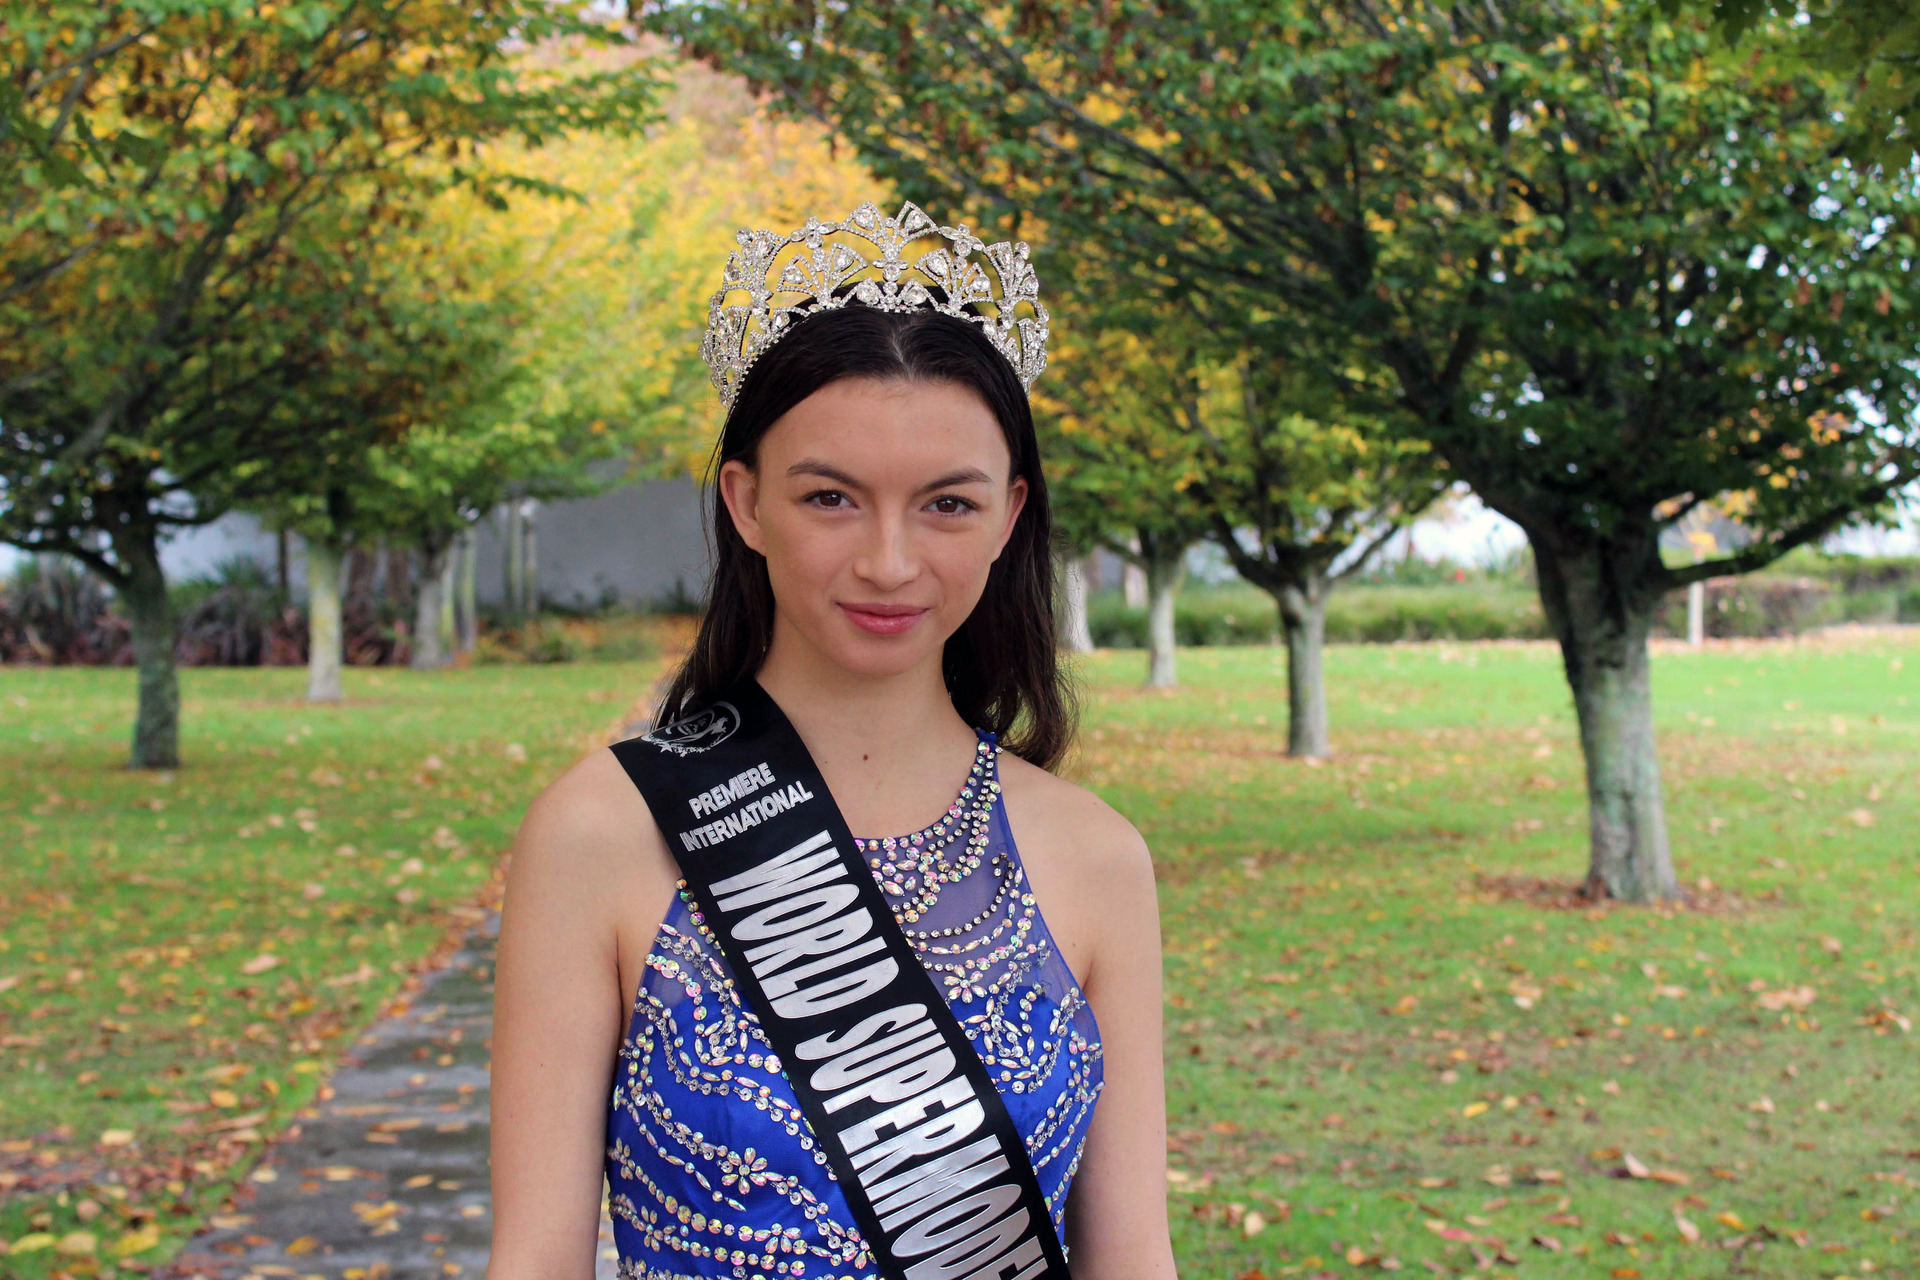 Her cousin was murdered, now Te Awamutu beauty queen Destiny Spence is speaking out